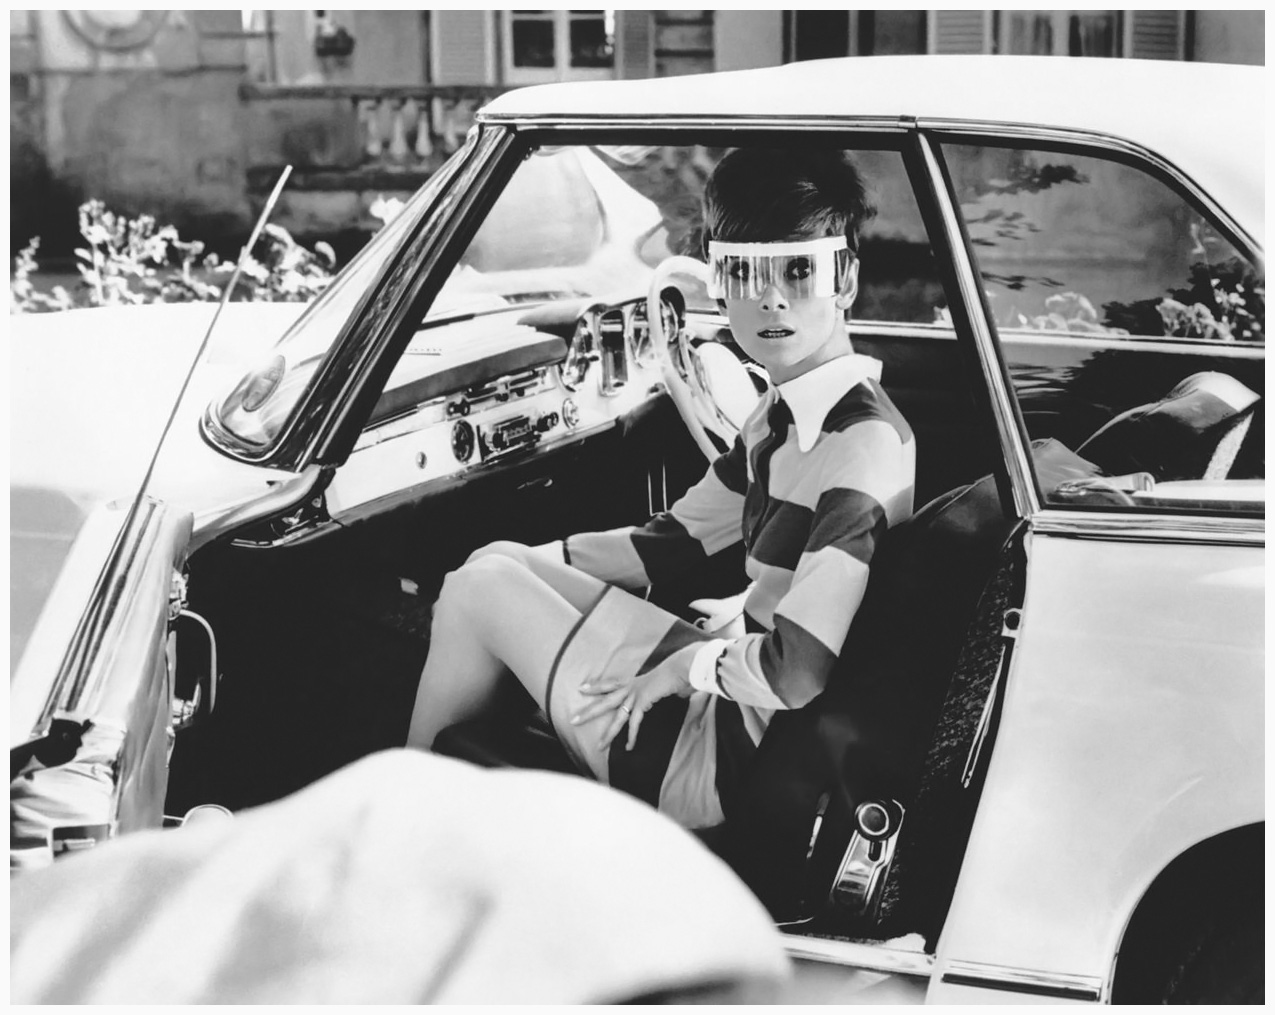 http://2.bp.blogspot.com/-LyUC93IlMI8/UQzpsuNH1kI/AAAAAAAApVk/DPYTs8PpfXs/s1600/audrey-hepburn-on-the-set-of-22two-for-the-road22-1967-20th-cent-jury-fox-film-corporation.jpg